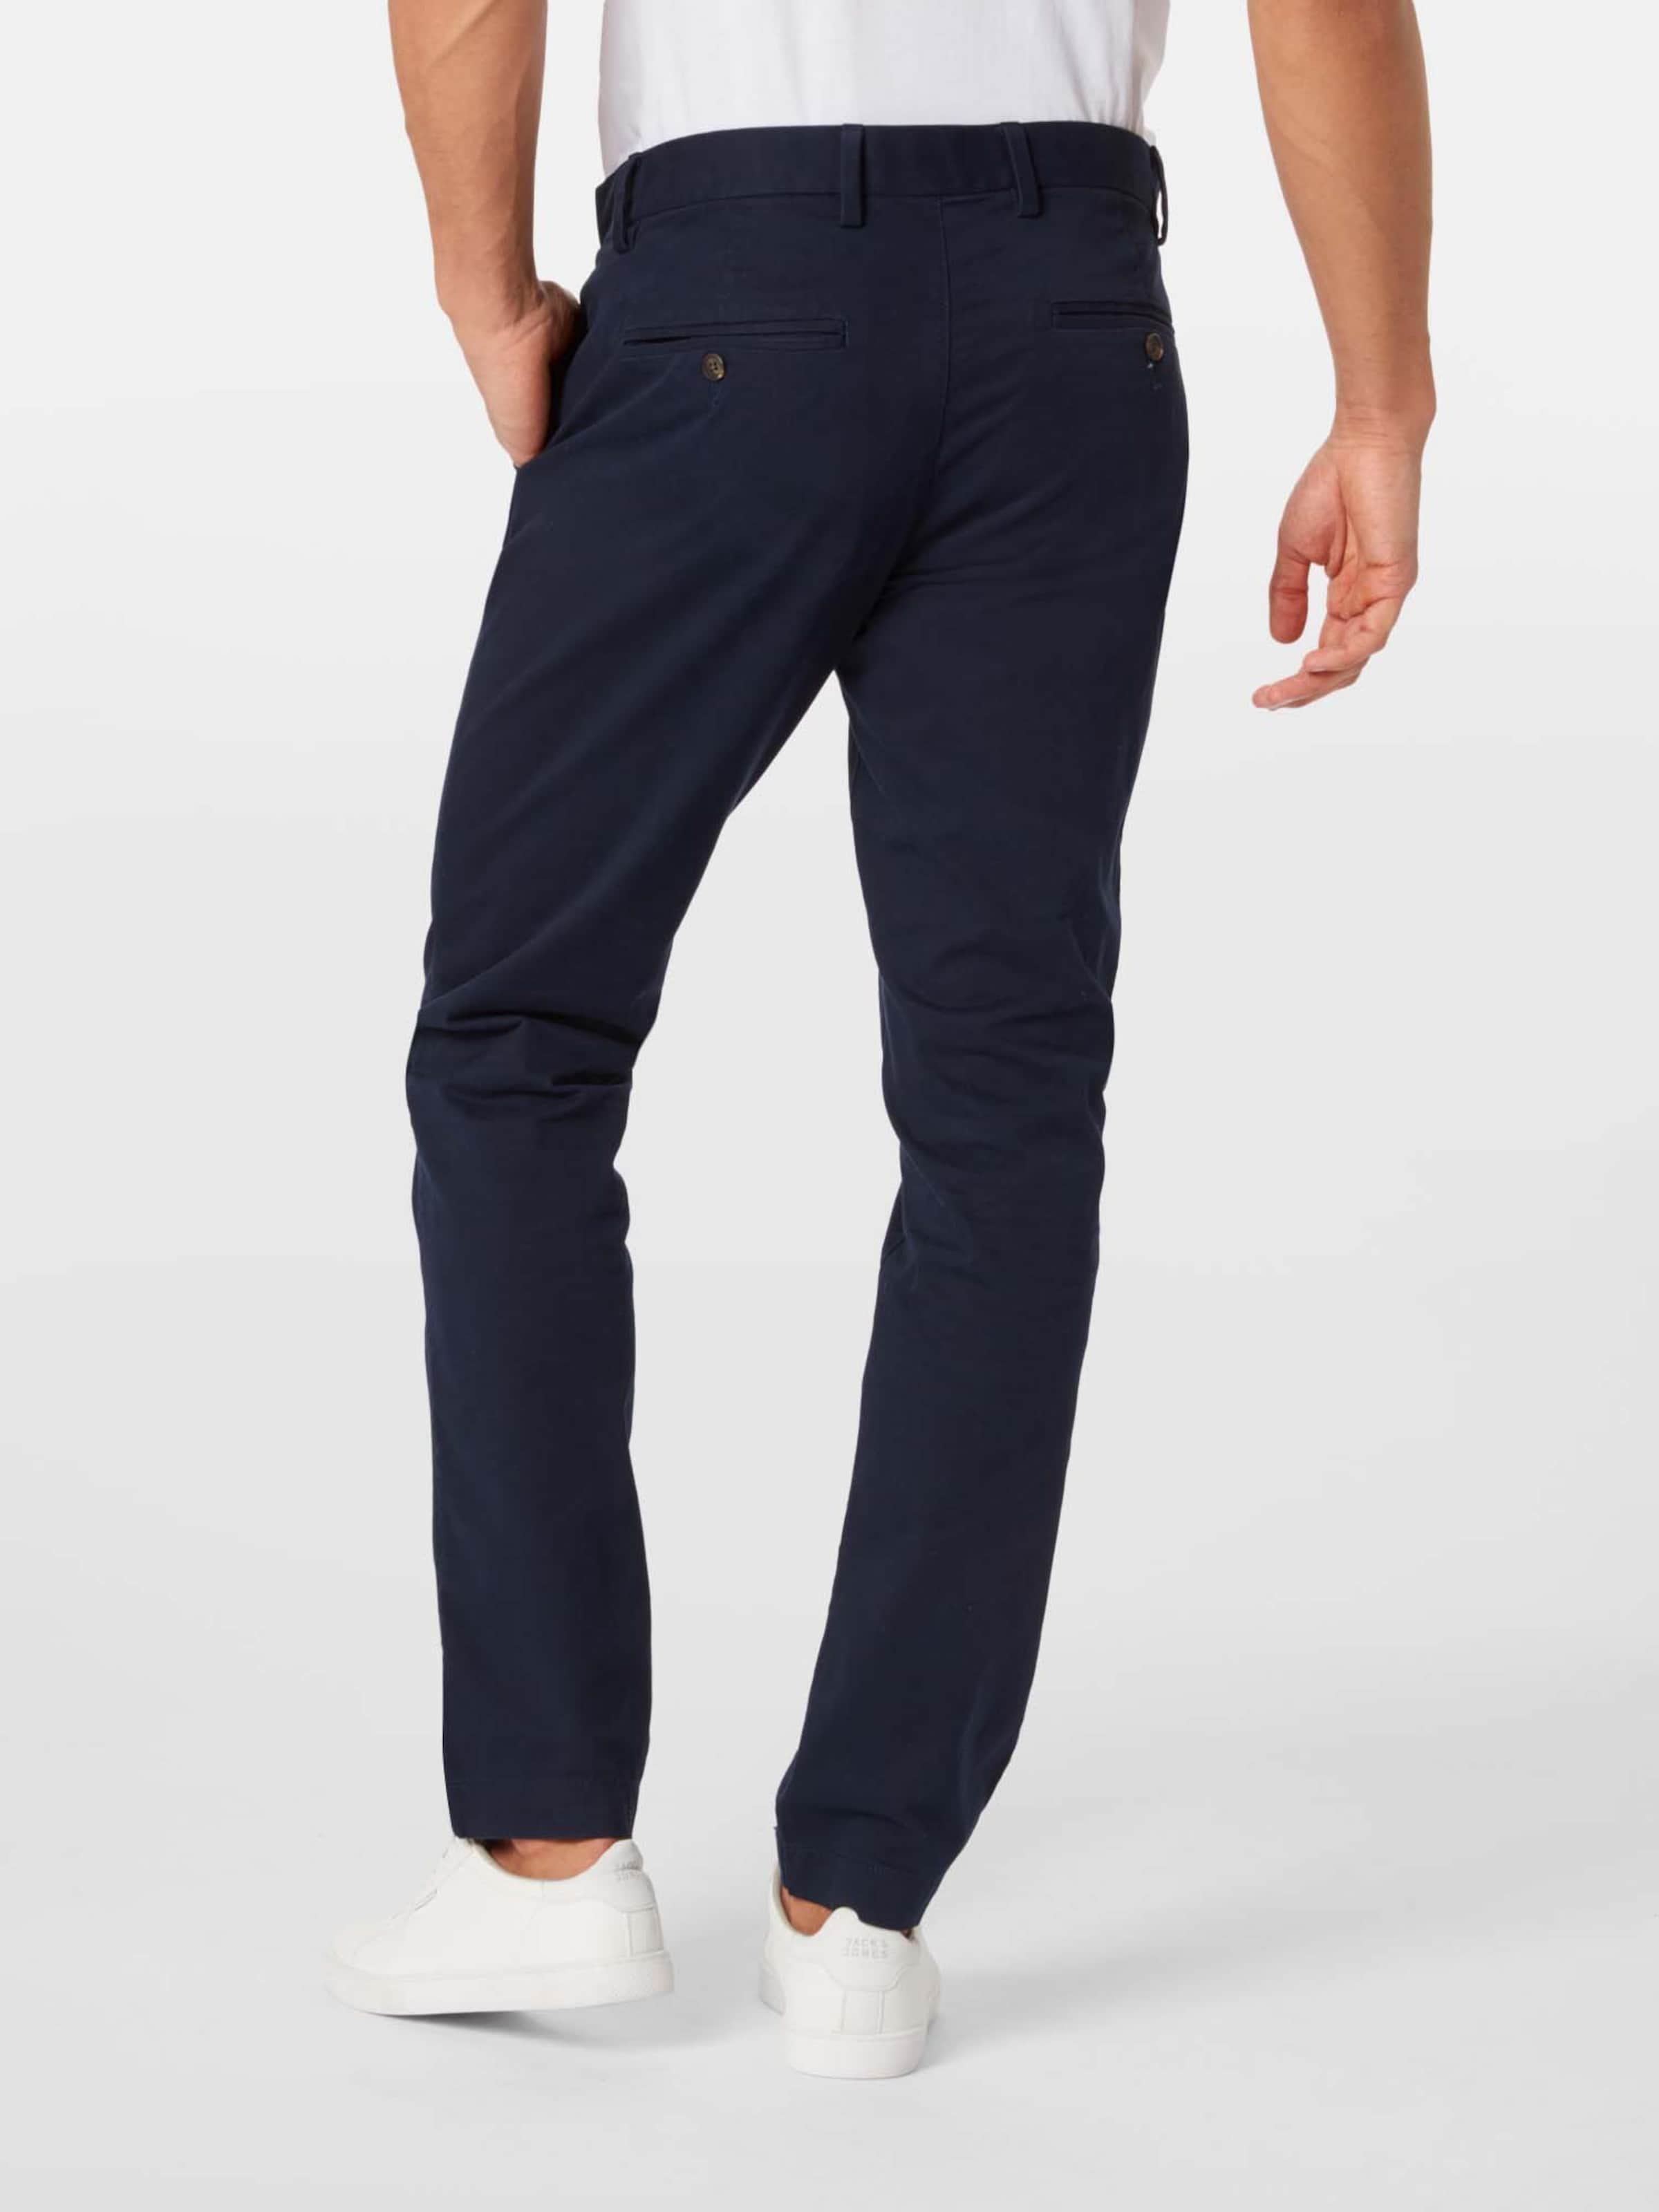 Chinohose Dunkelblau Chinohose In In Dunkelblau In Gap Chinohose Gap Gap Chinohose Gap Dunkelblau vNnw0m8